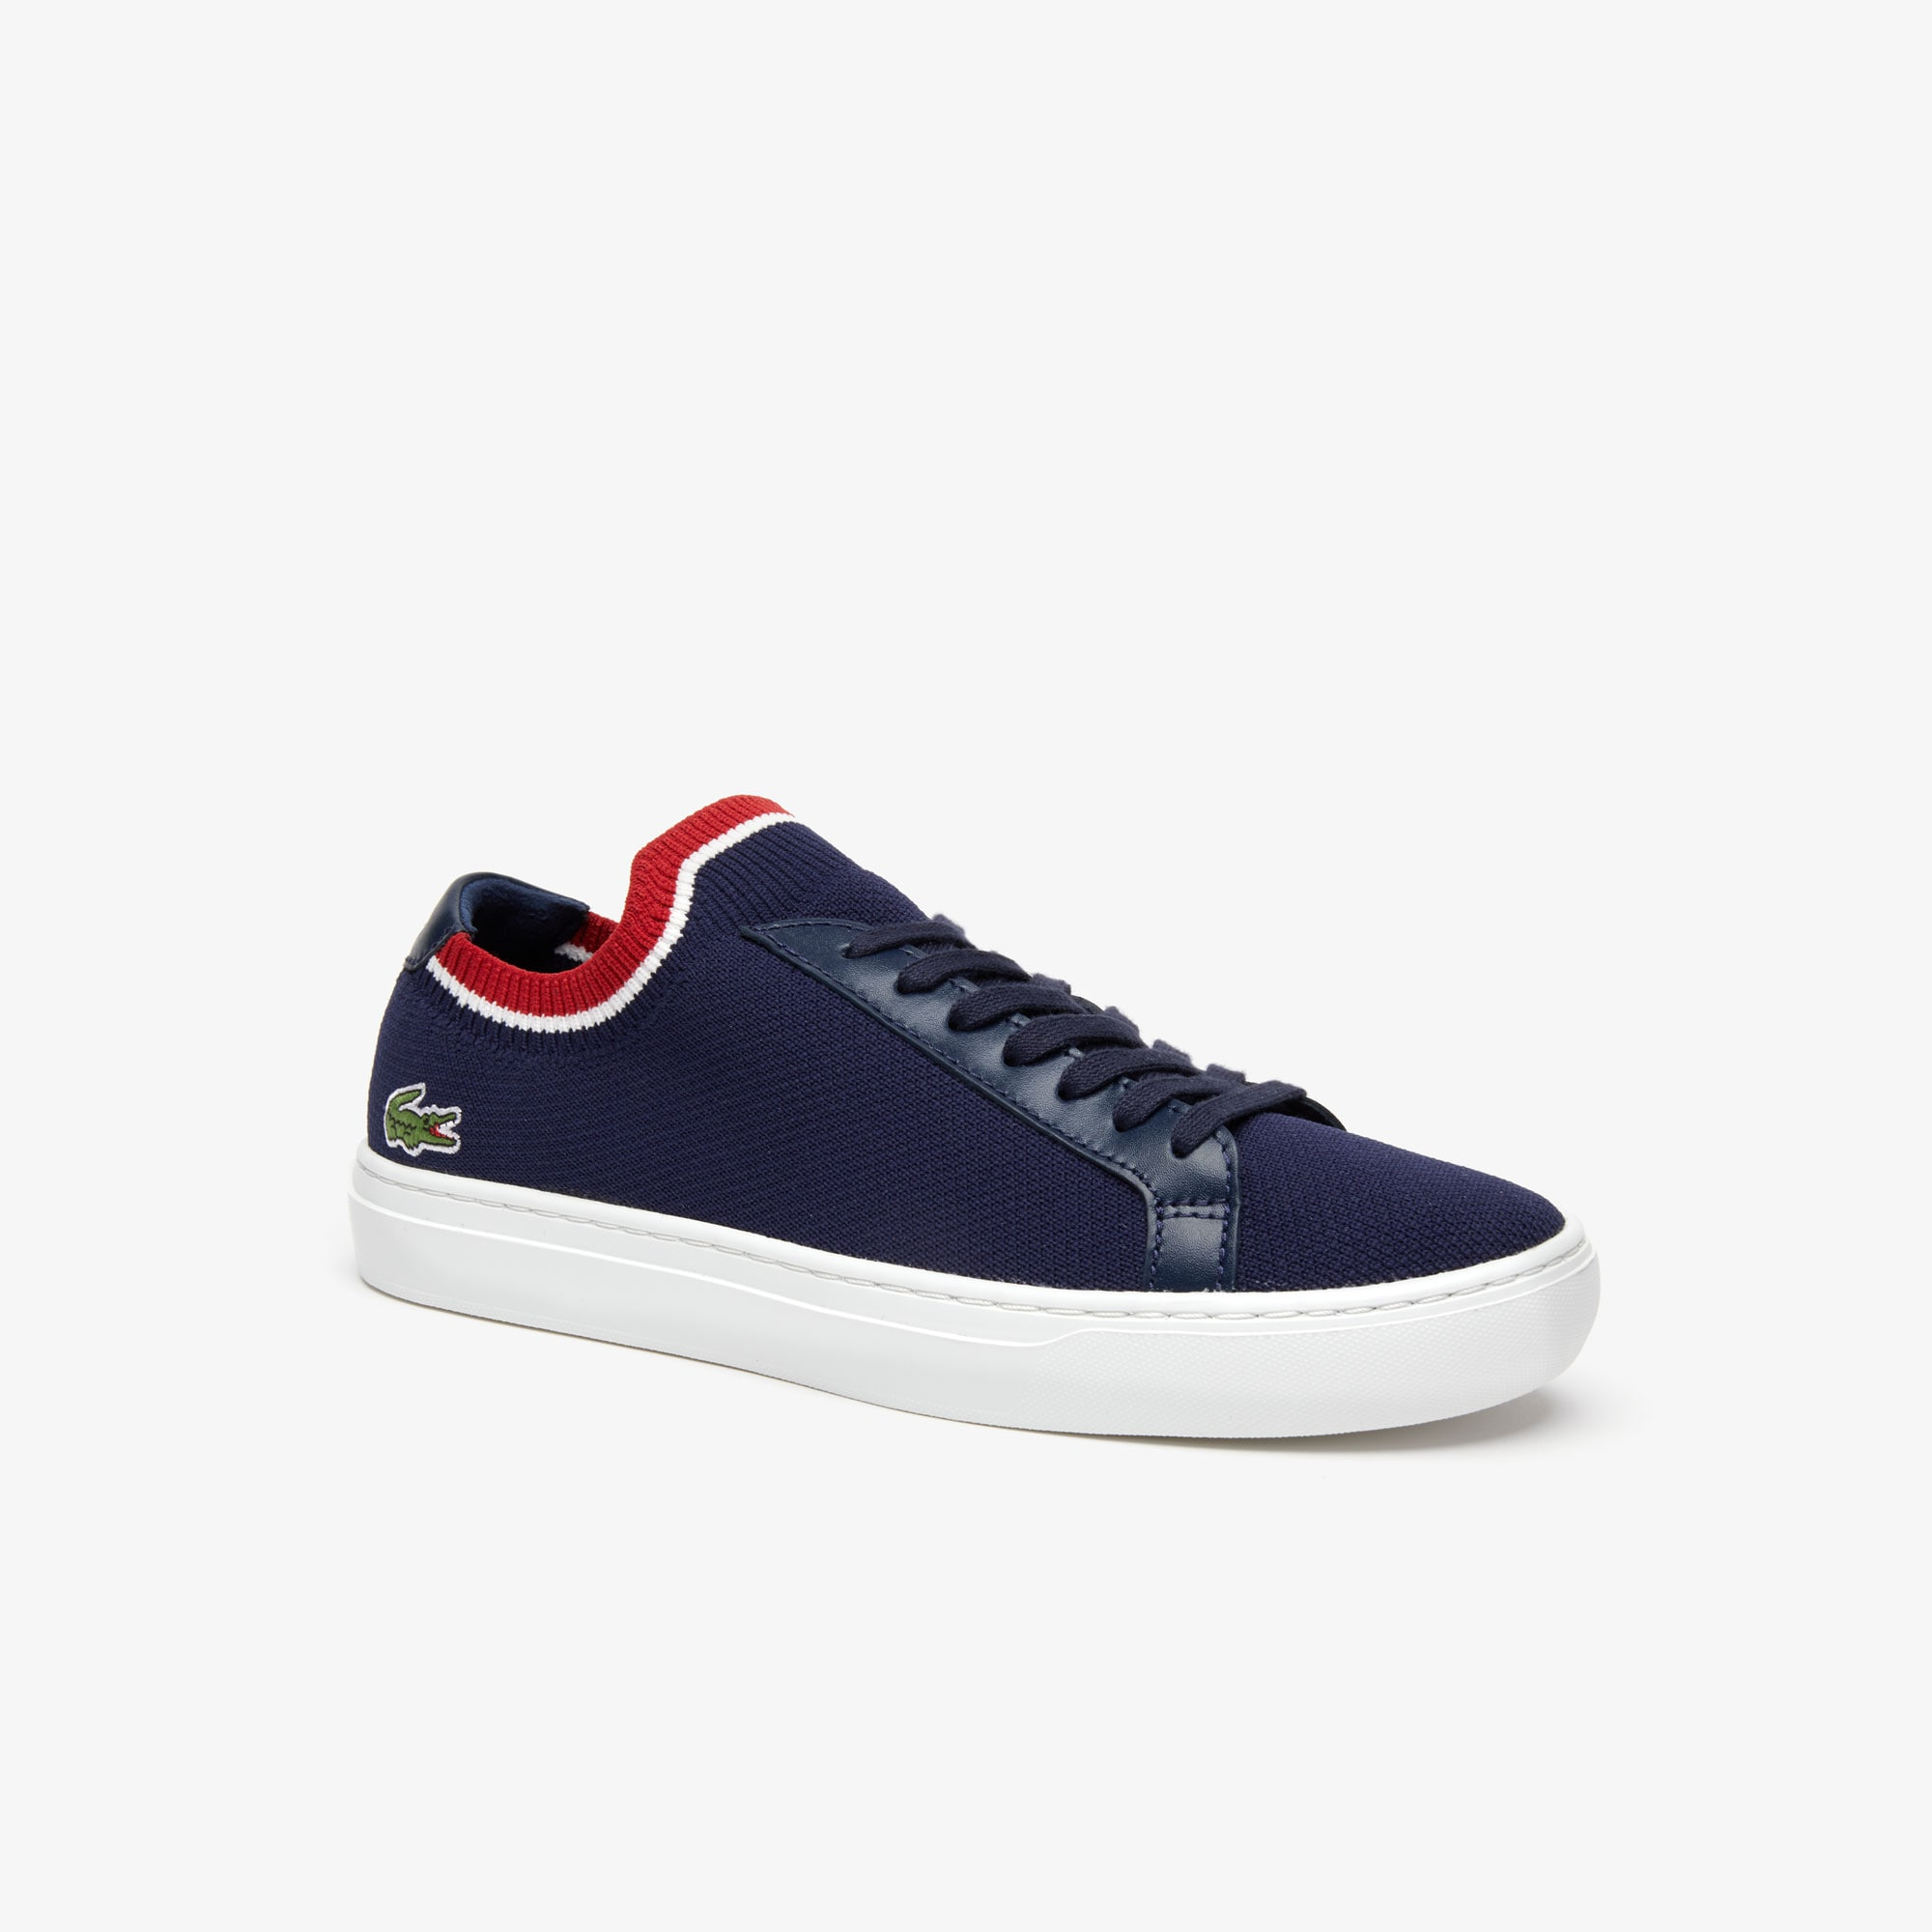 15eeccb97 Lacoste shoes for men  Sneakers